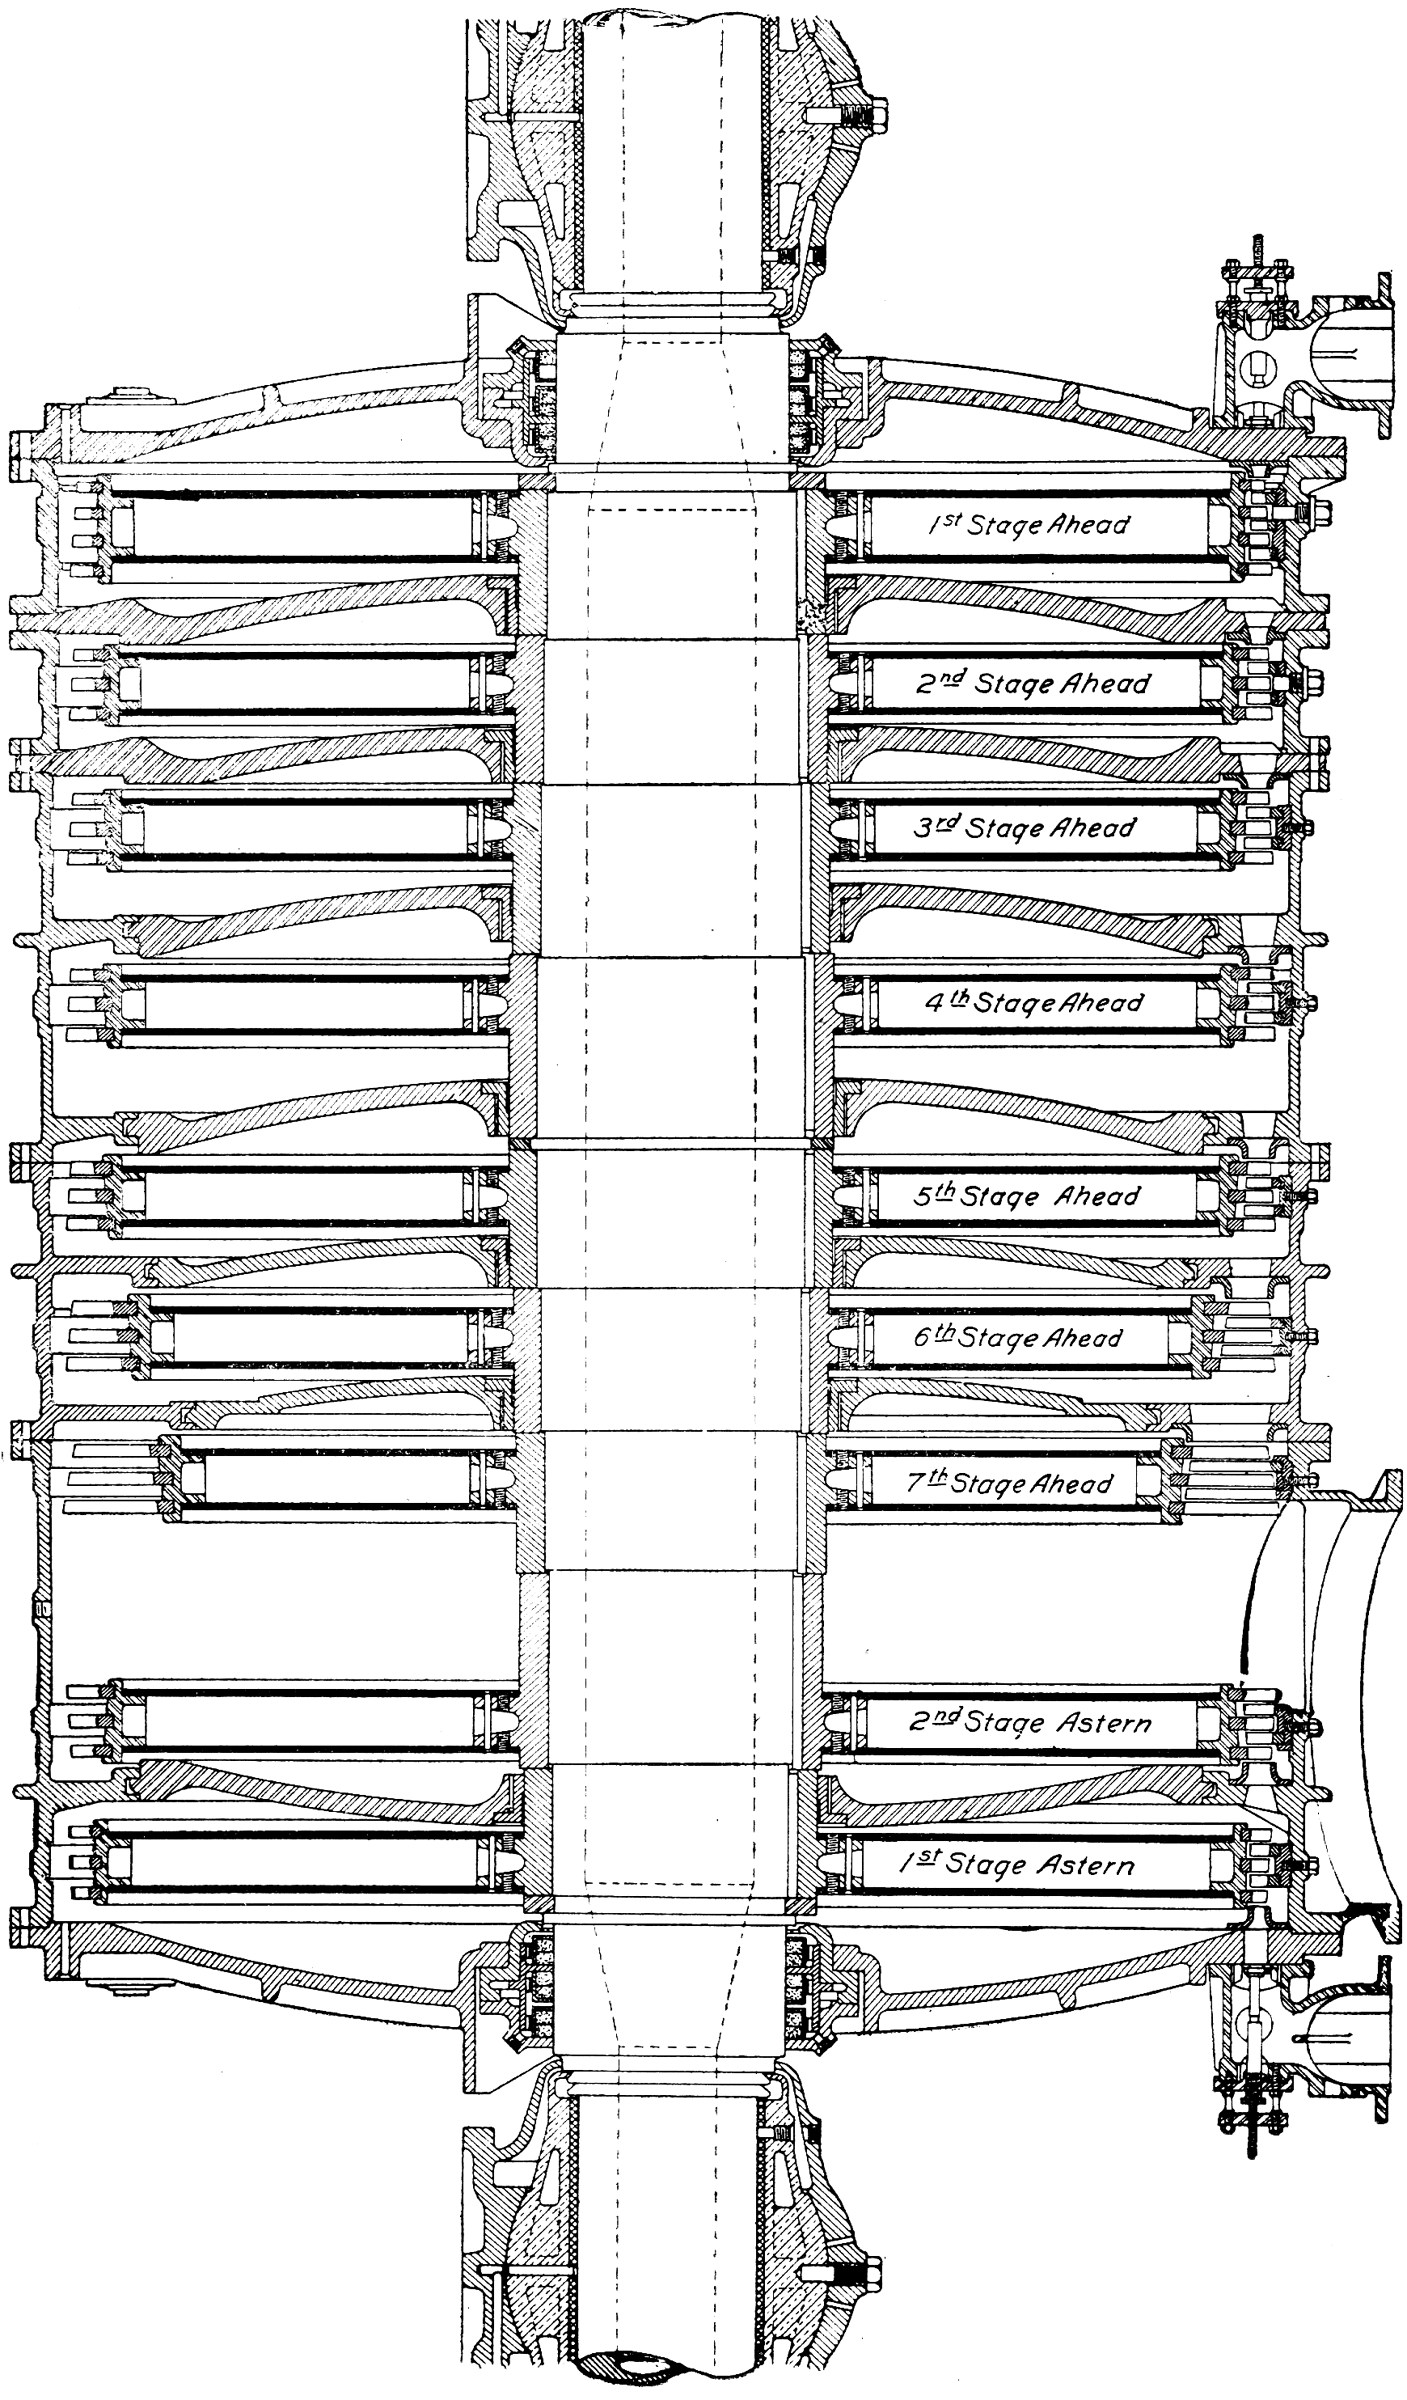 Cross Sectional View of U.S.S Salem Steam Engine Showing